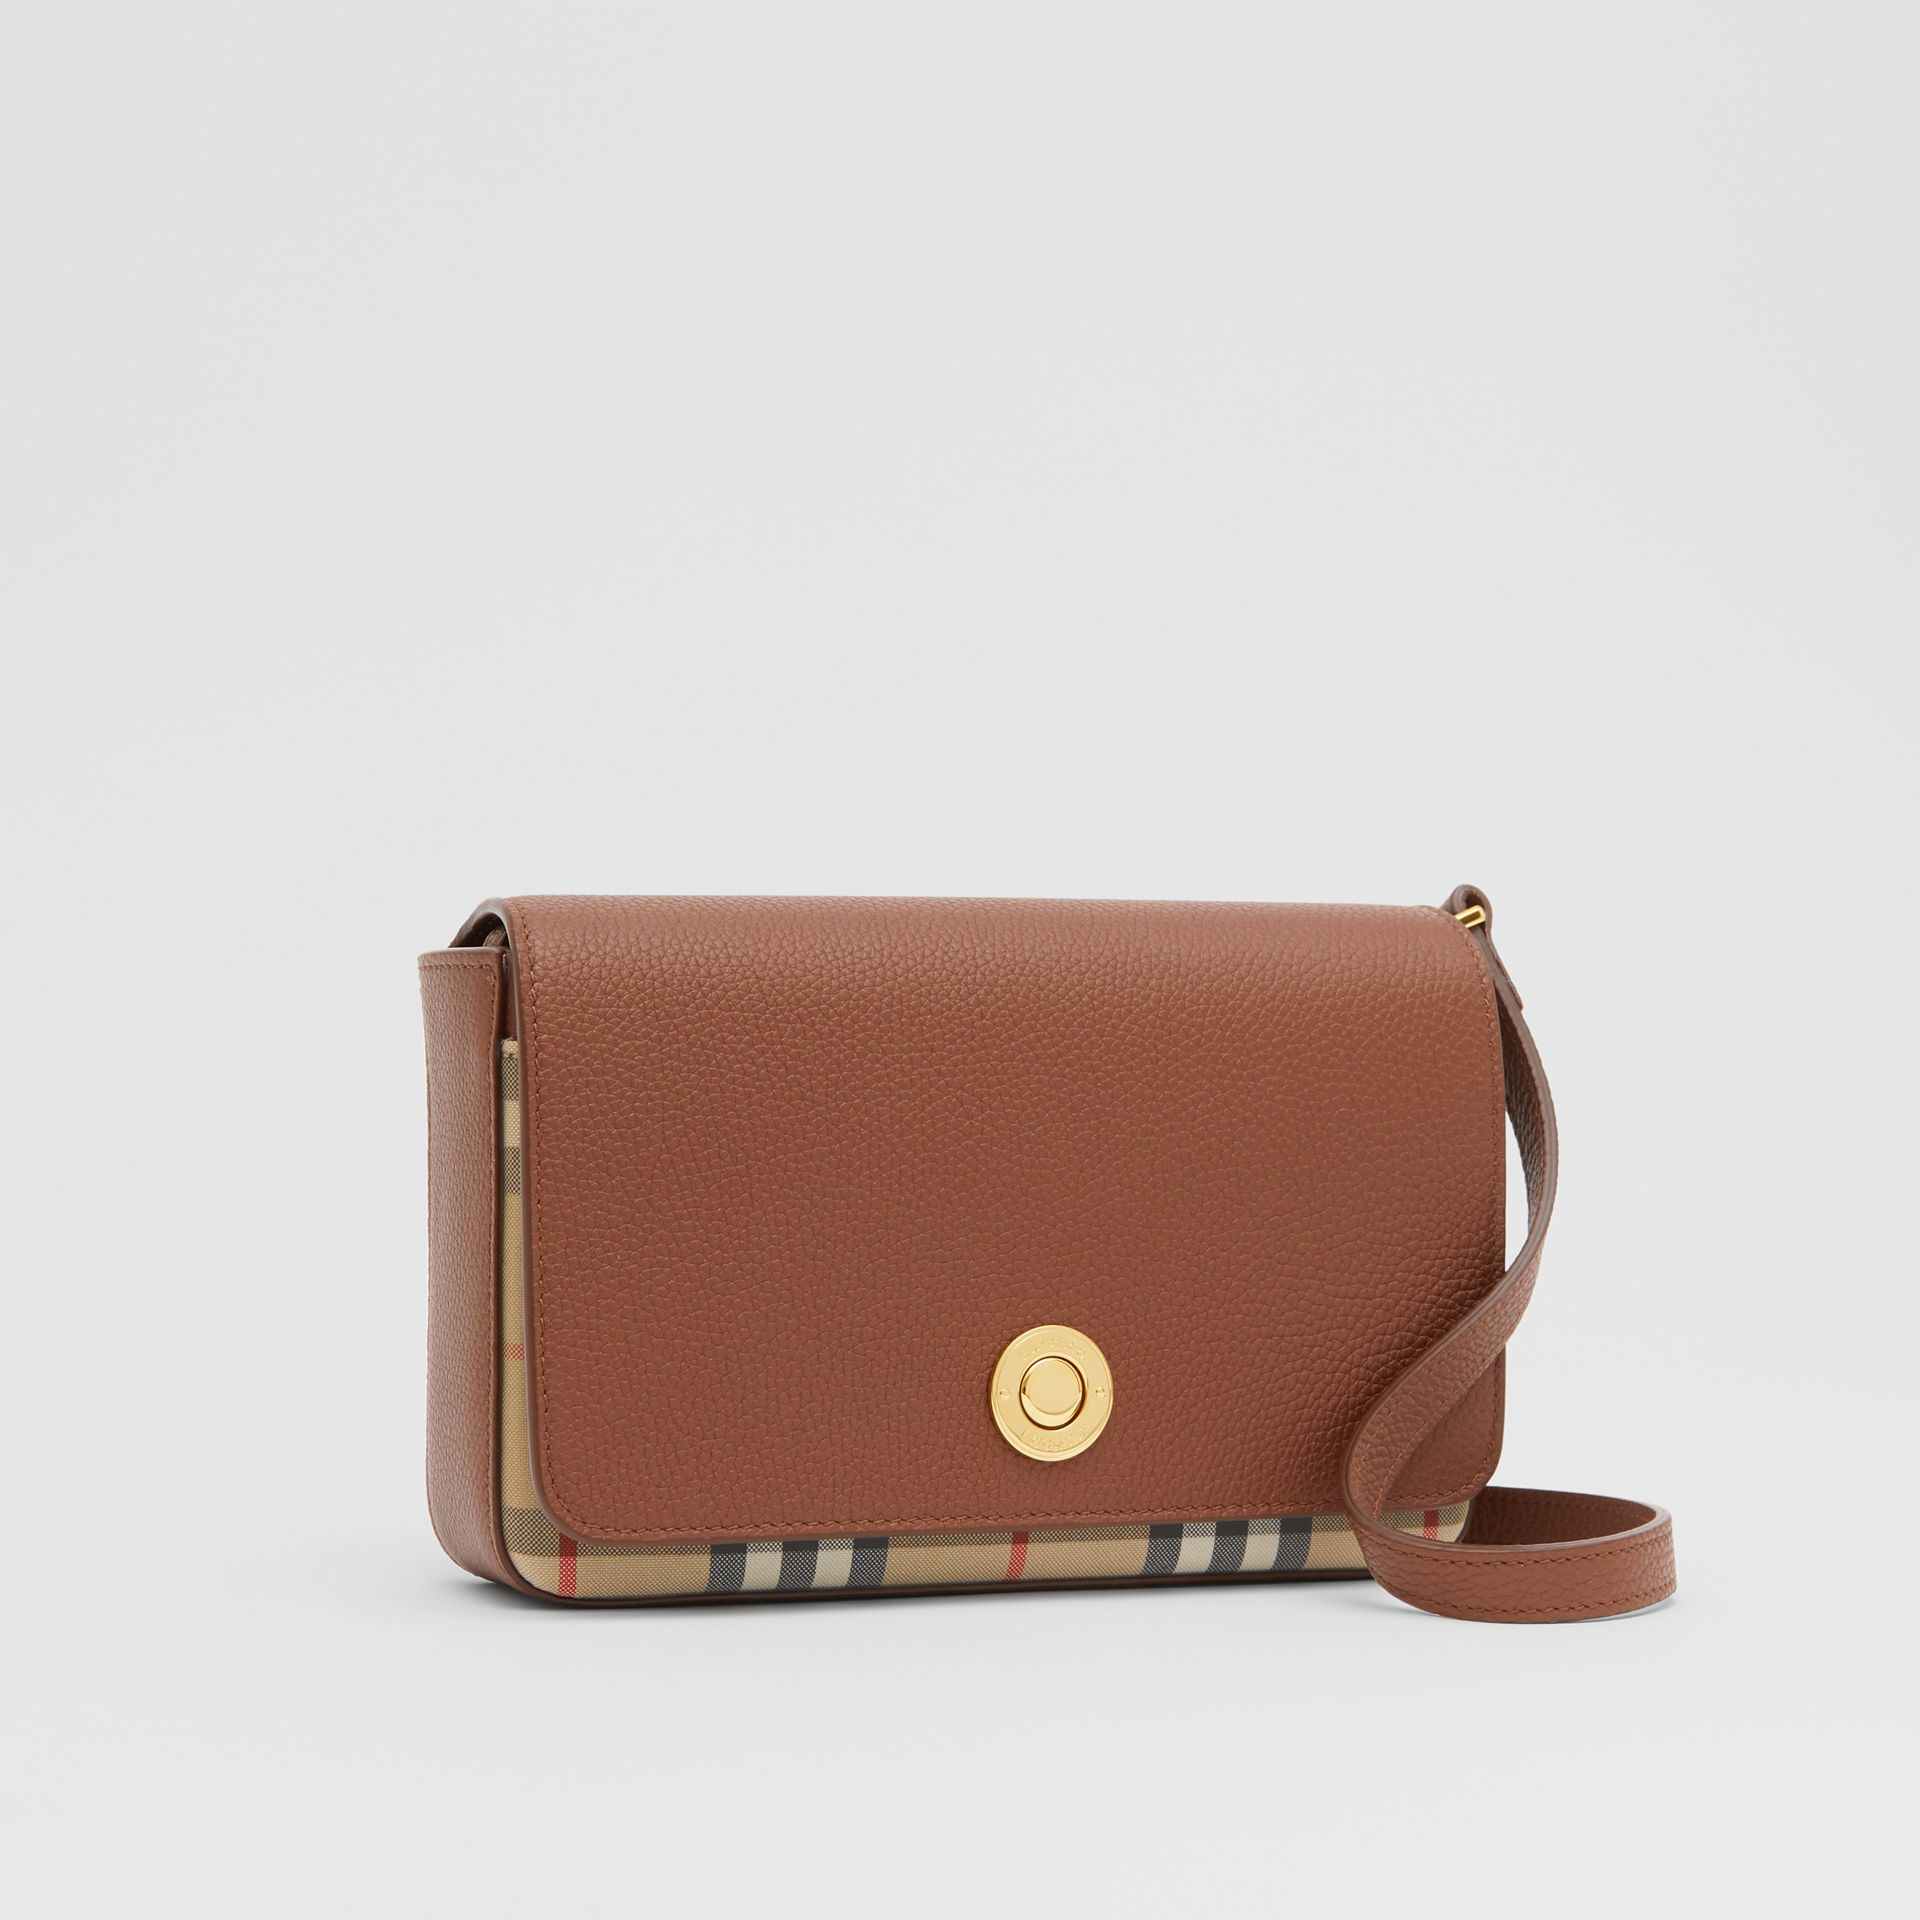 Small Leather and Vintage Check Crossbody Bag in Tan - Women | Burberry United Kingdom - gallery image 4